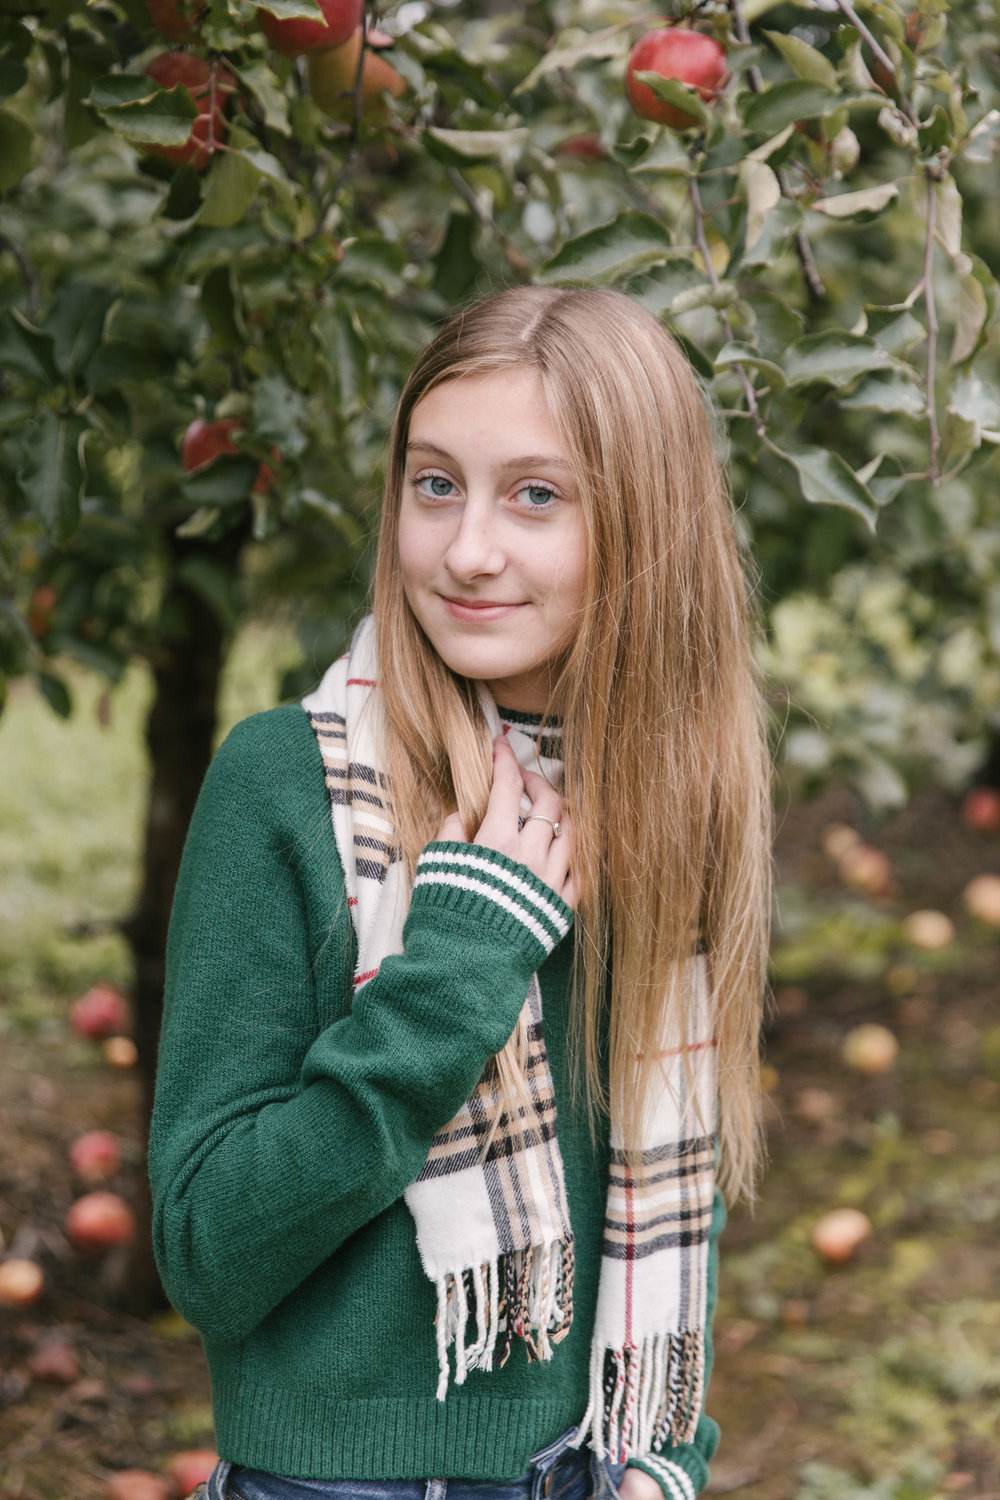 family-photography-session-at-hartford-apple-orchards-hartford-ohio-by-family-photographer-christie-leigh-photo-44.JPG